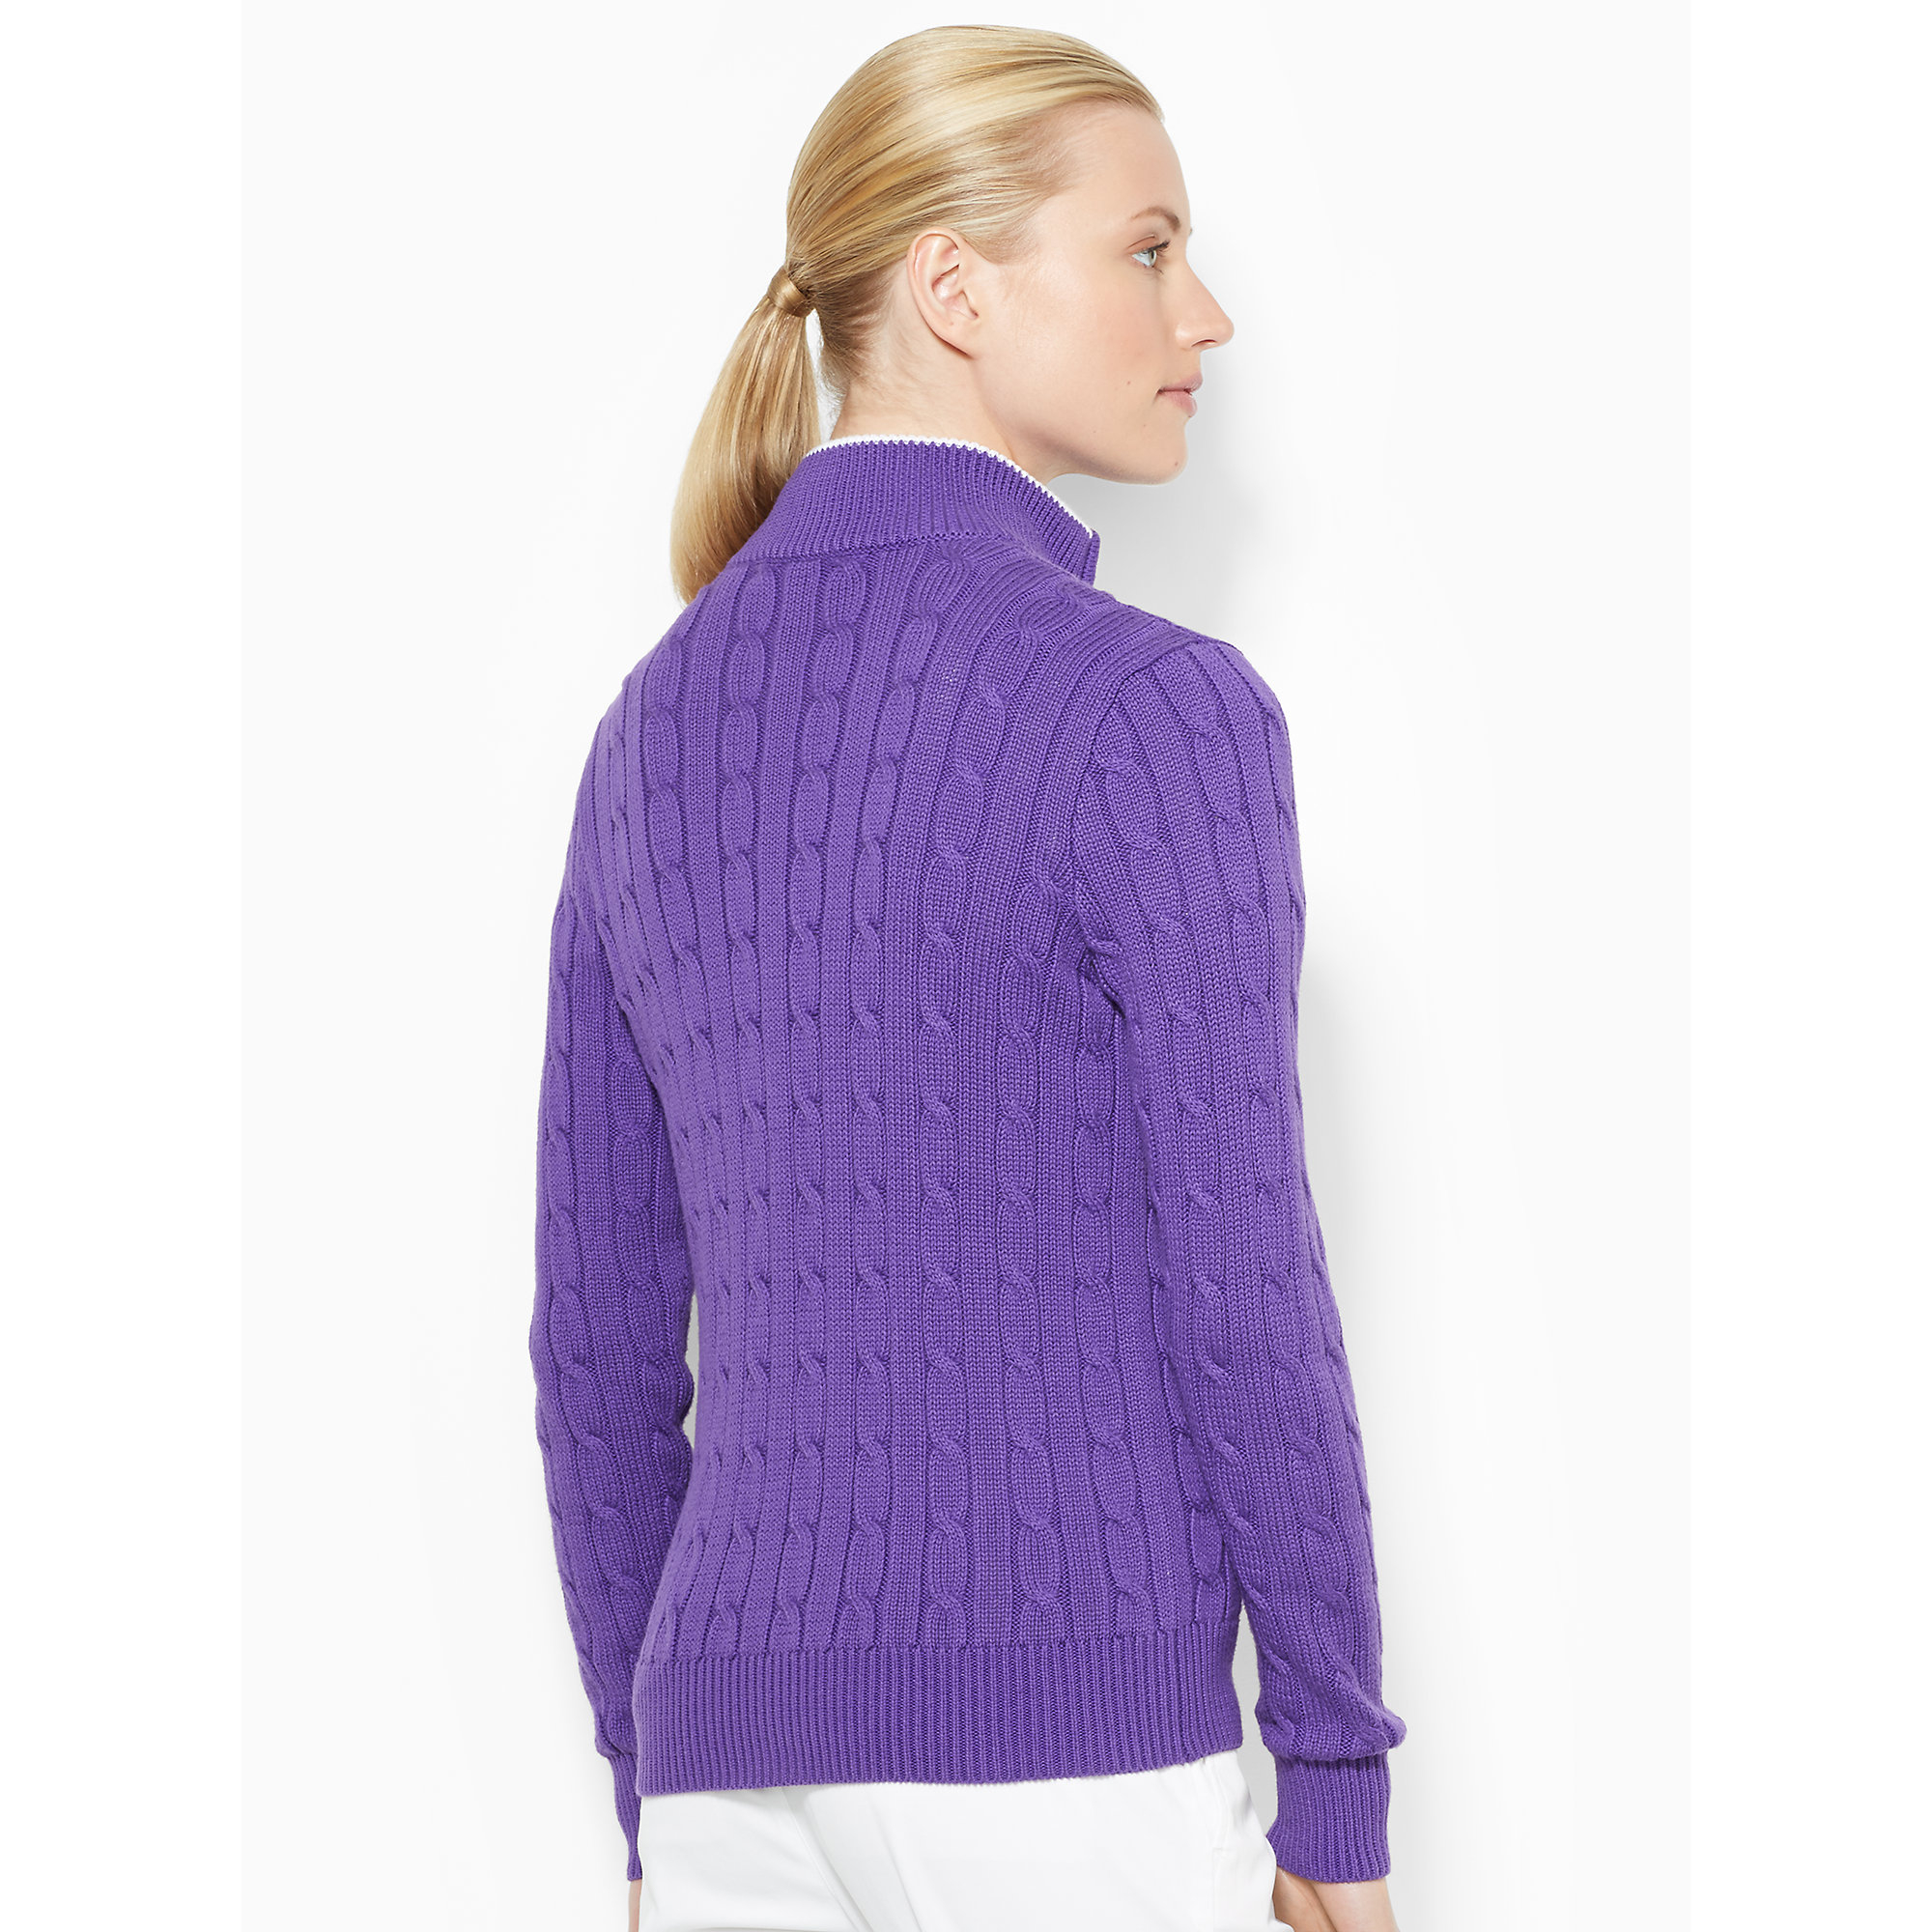 Ralph lauren golf Cable-Knit Zip-Up Sweater in Purple | Lyst